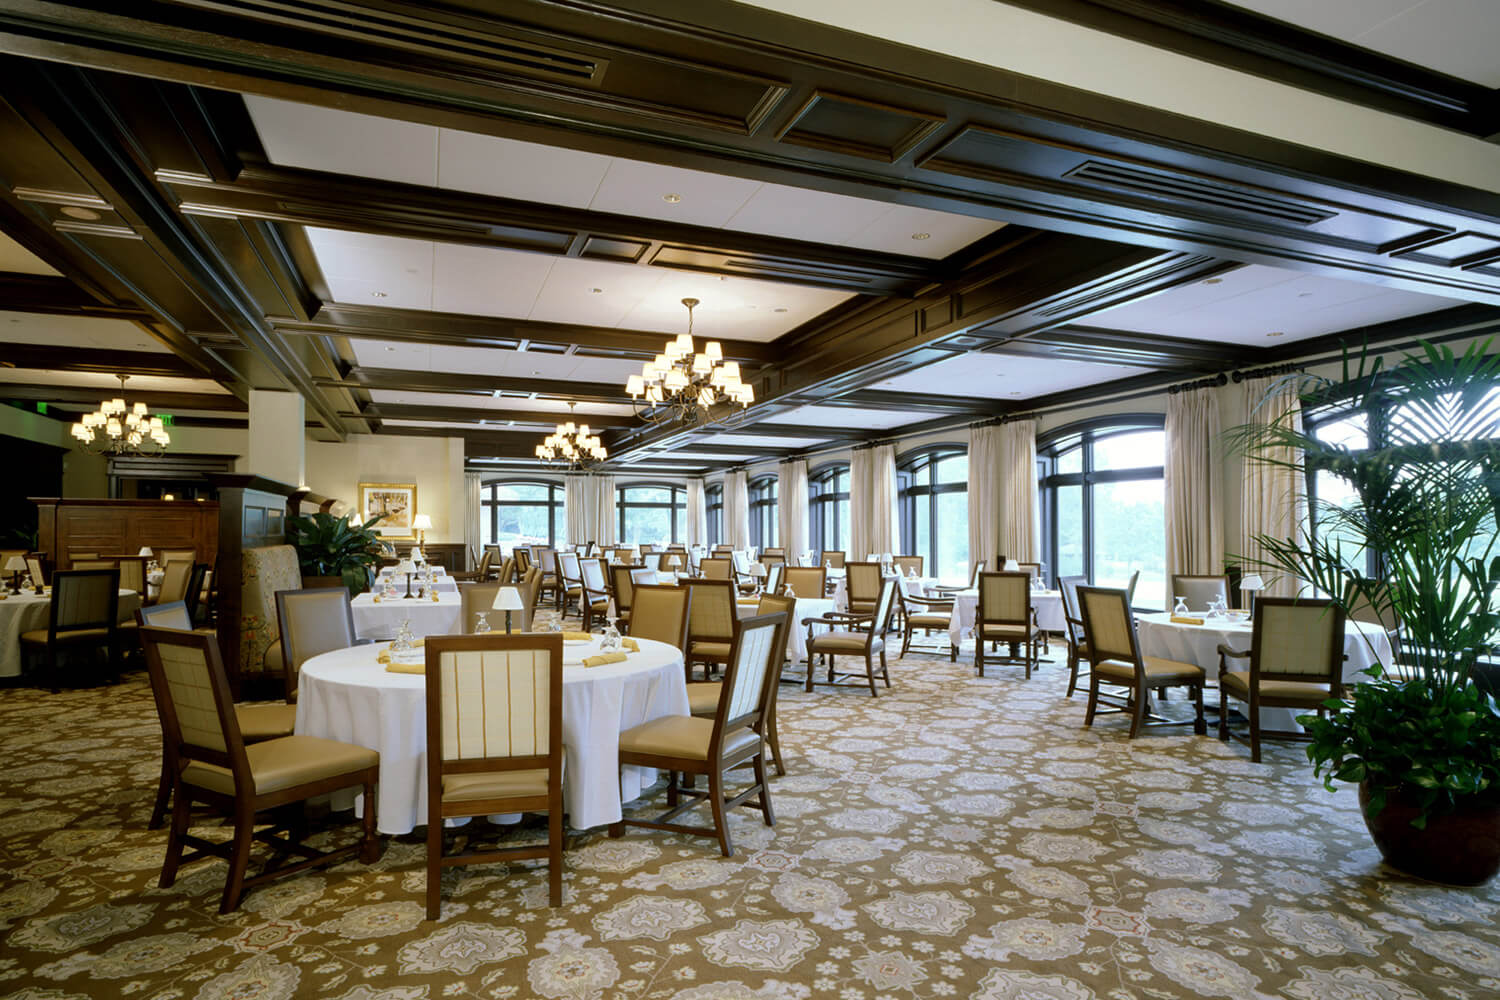 Skokie Country Club dining room